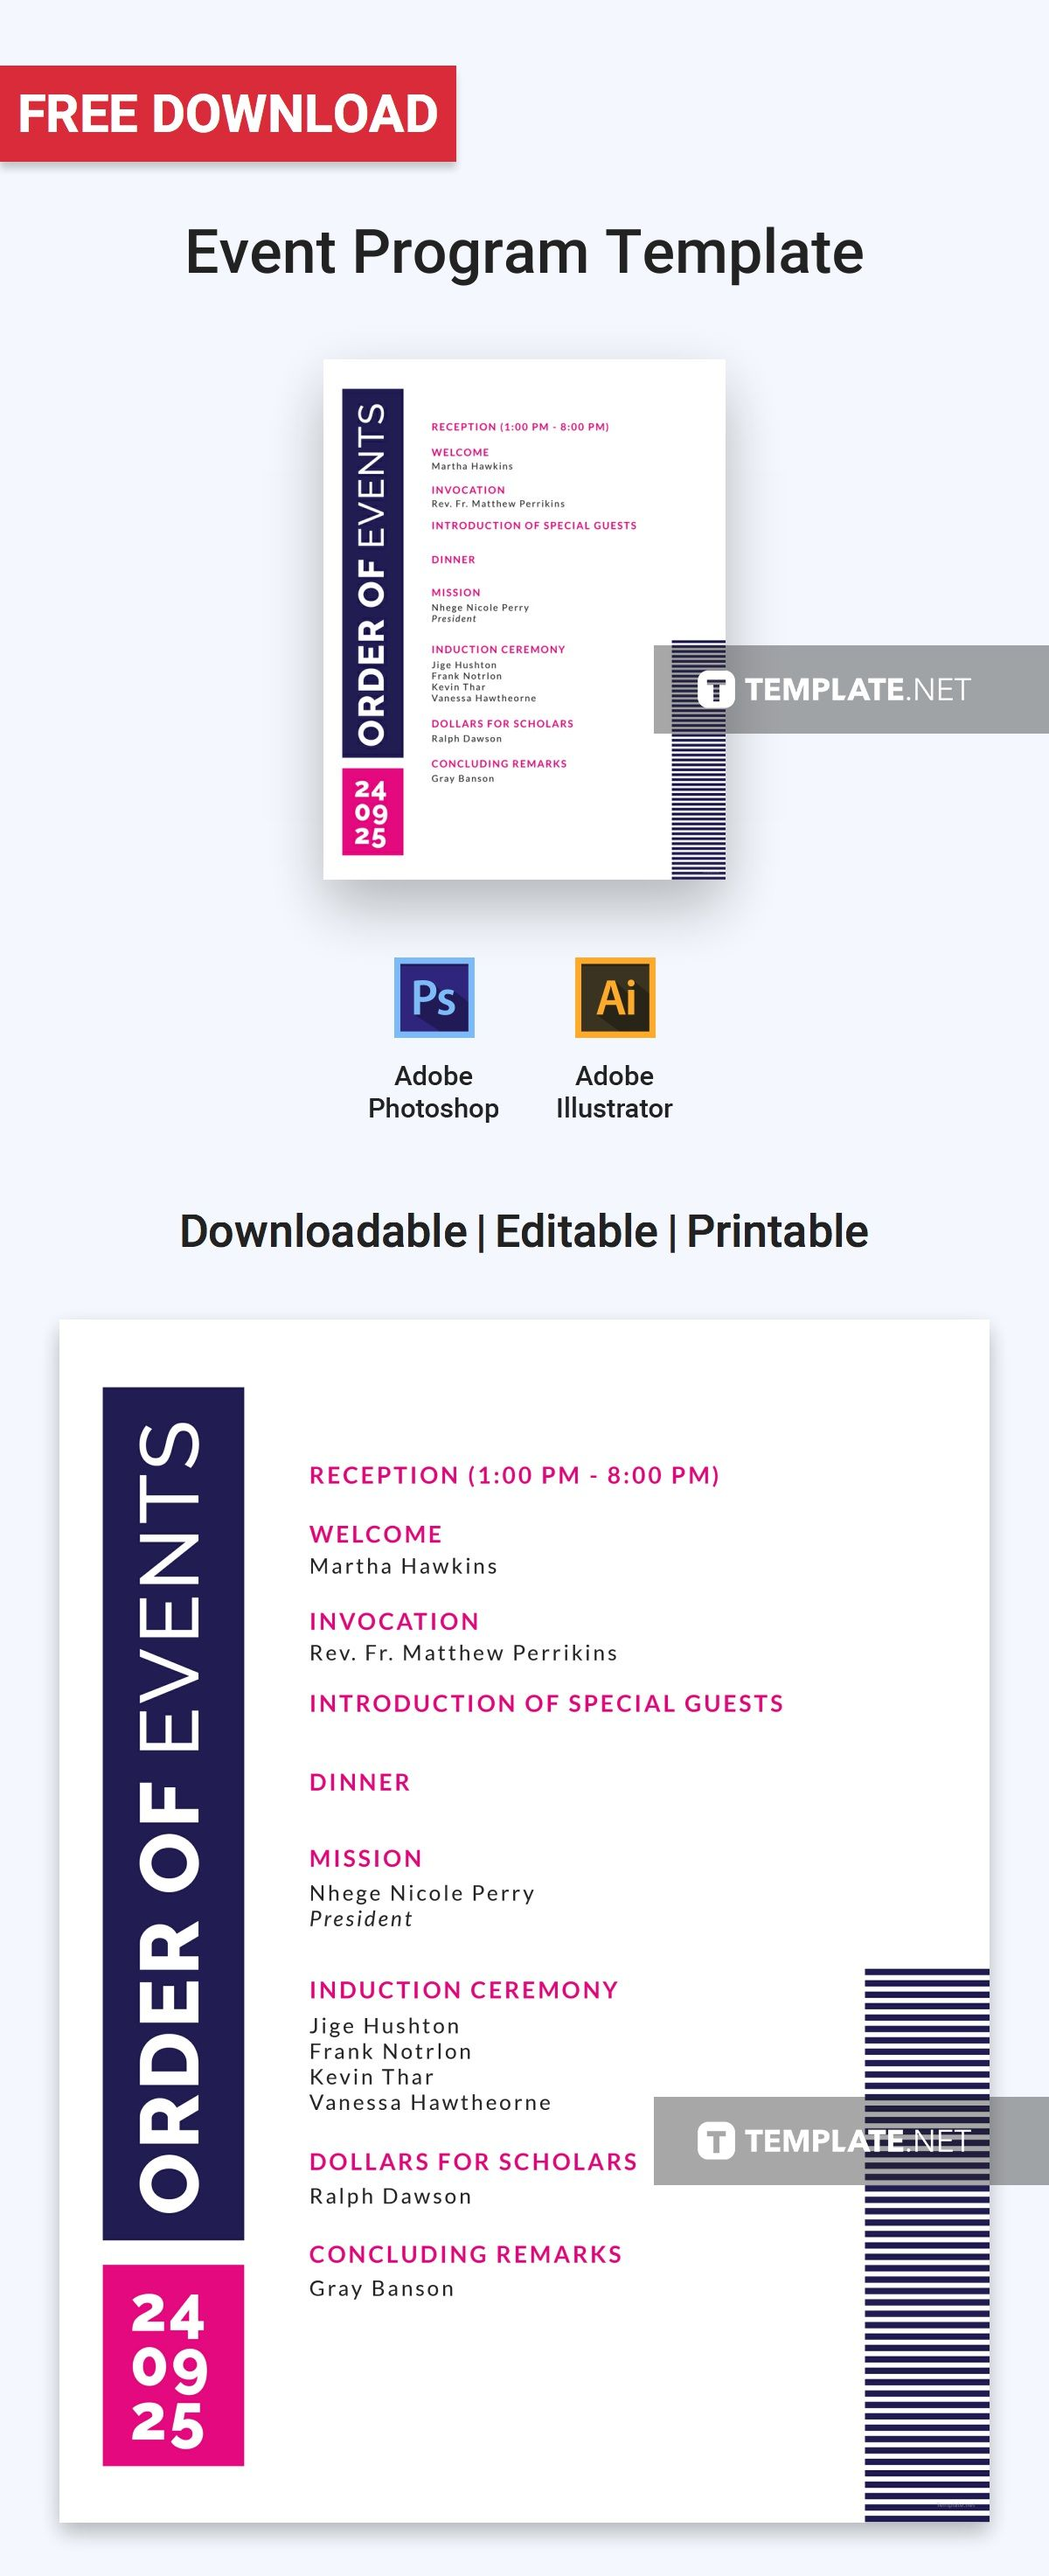 Free event program free program templates pinterest program download free event program template for personal business use professionally designed free program templates flashek Images